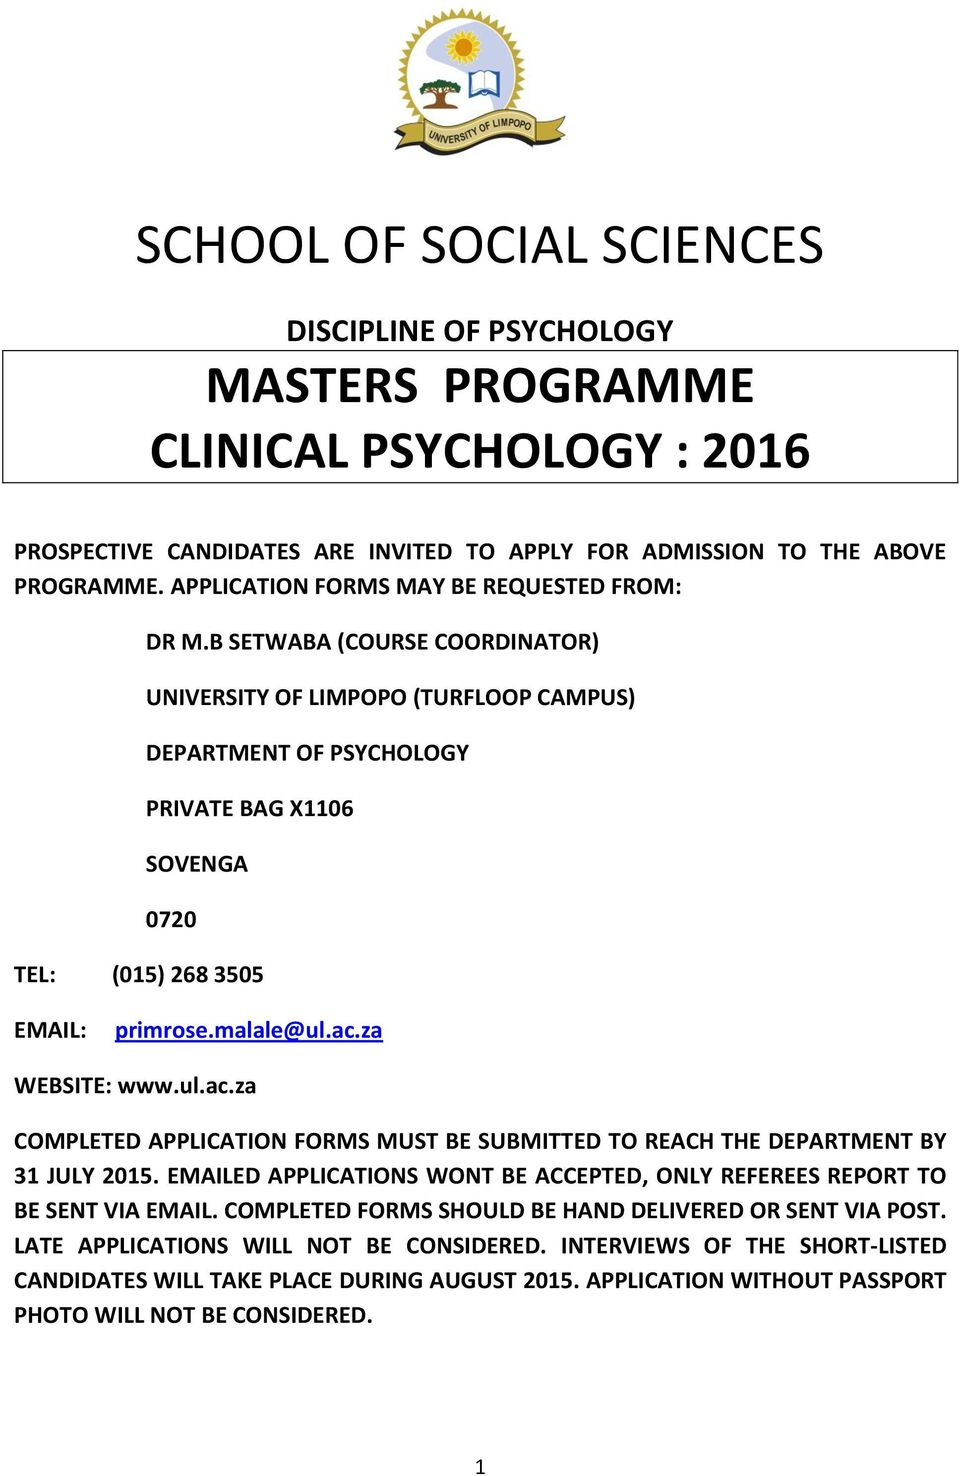 B SETWABA (COURSE COORDINATOR) UNIVERSITY OF LIMPOPO (TURFLOOP CAMPUS) DEPARTMENT OF PSYCHOLOGY PRIVATE BAG X1106 SOVENGA 0720 TEL: (015) 268 3505 EMAIL: primrose.malale@ul.ac.